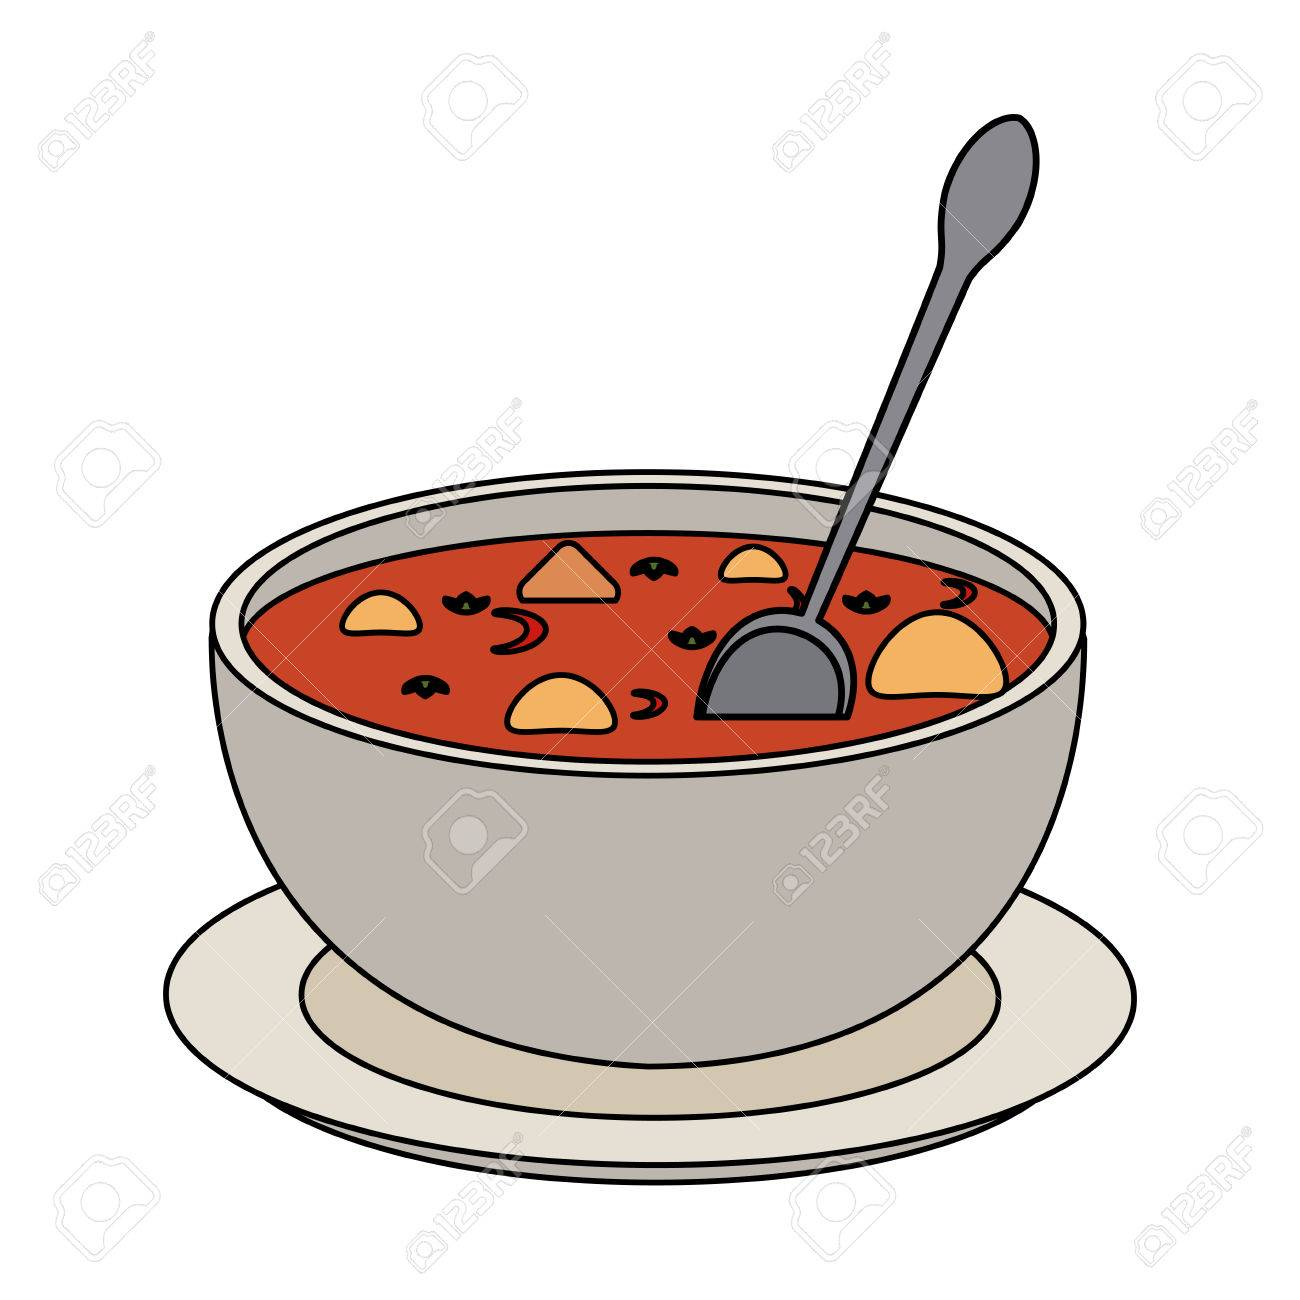 hot soup bowl icon vector illustration graphic design royalty free rh 123rf com soup bowls images clip art soup bowl clipart